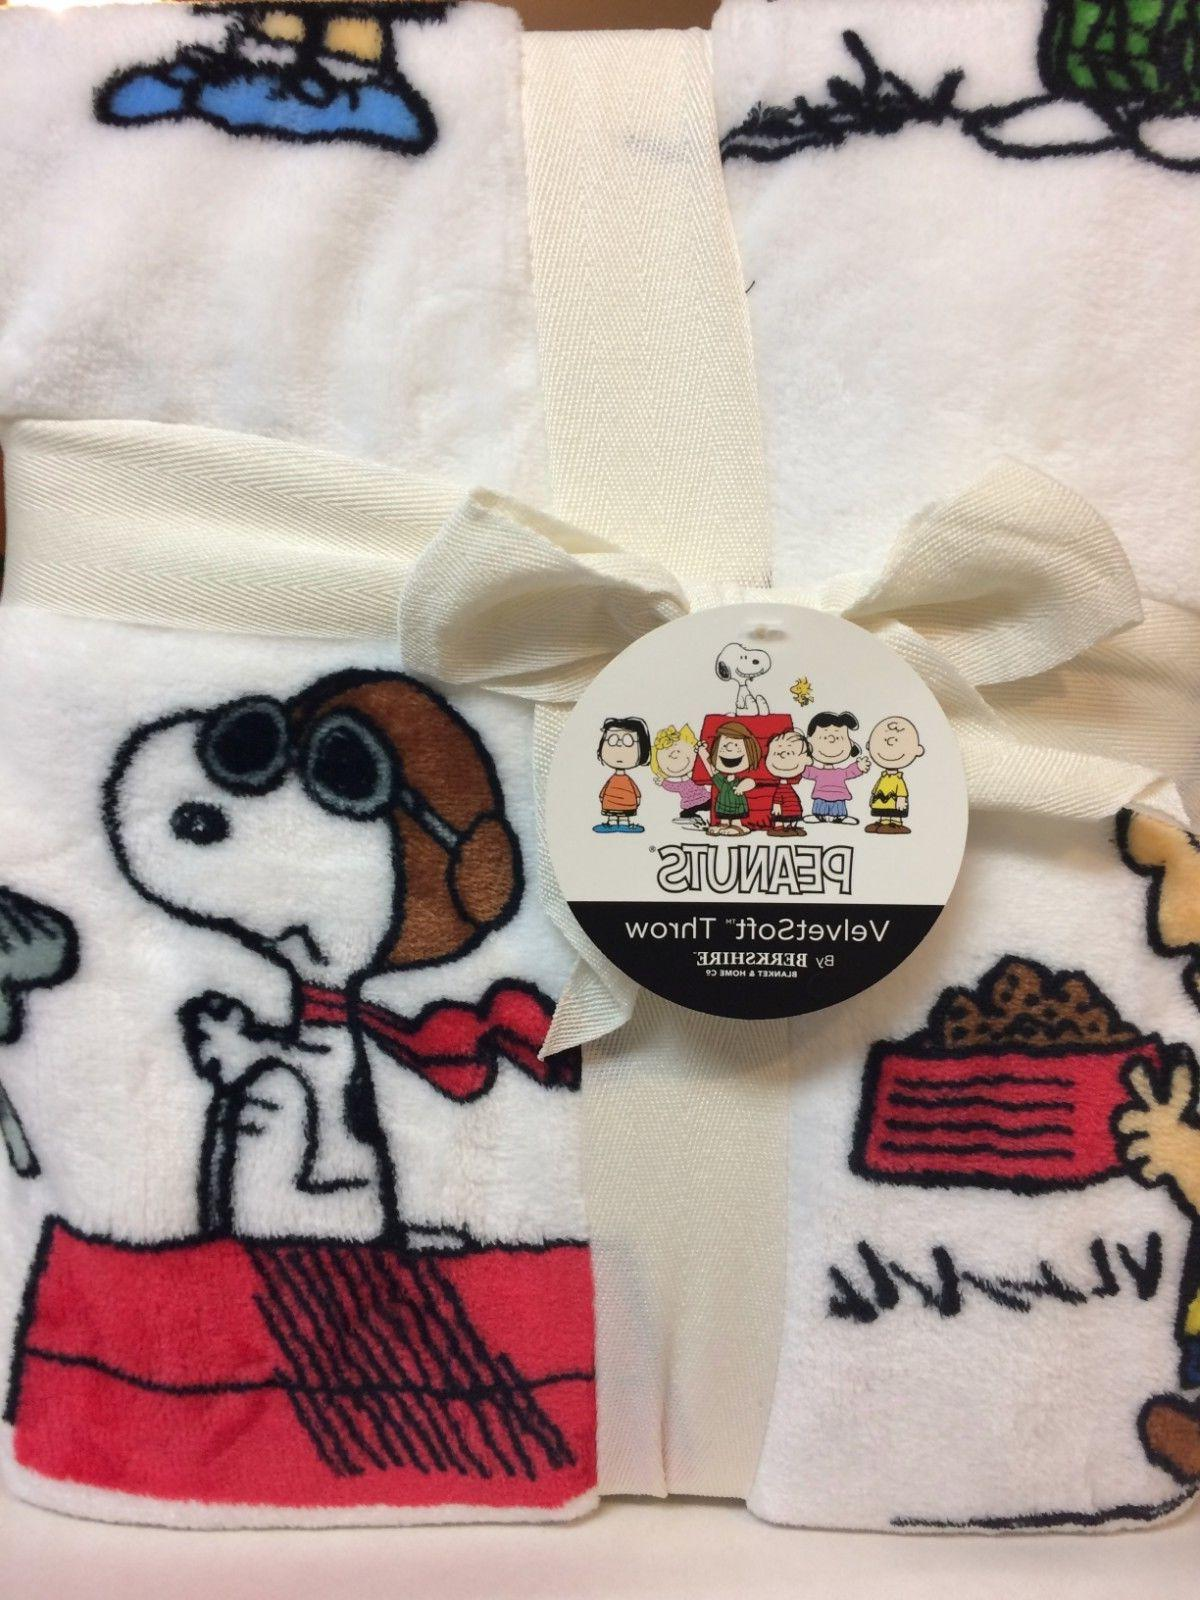 peanuts snoopy charlie brown and gang full